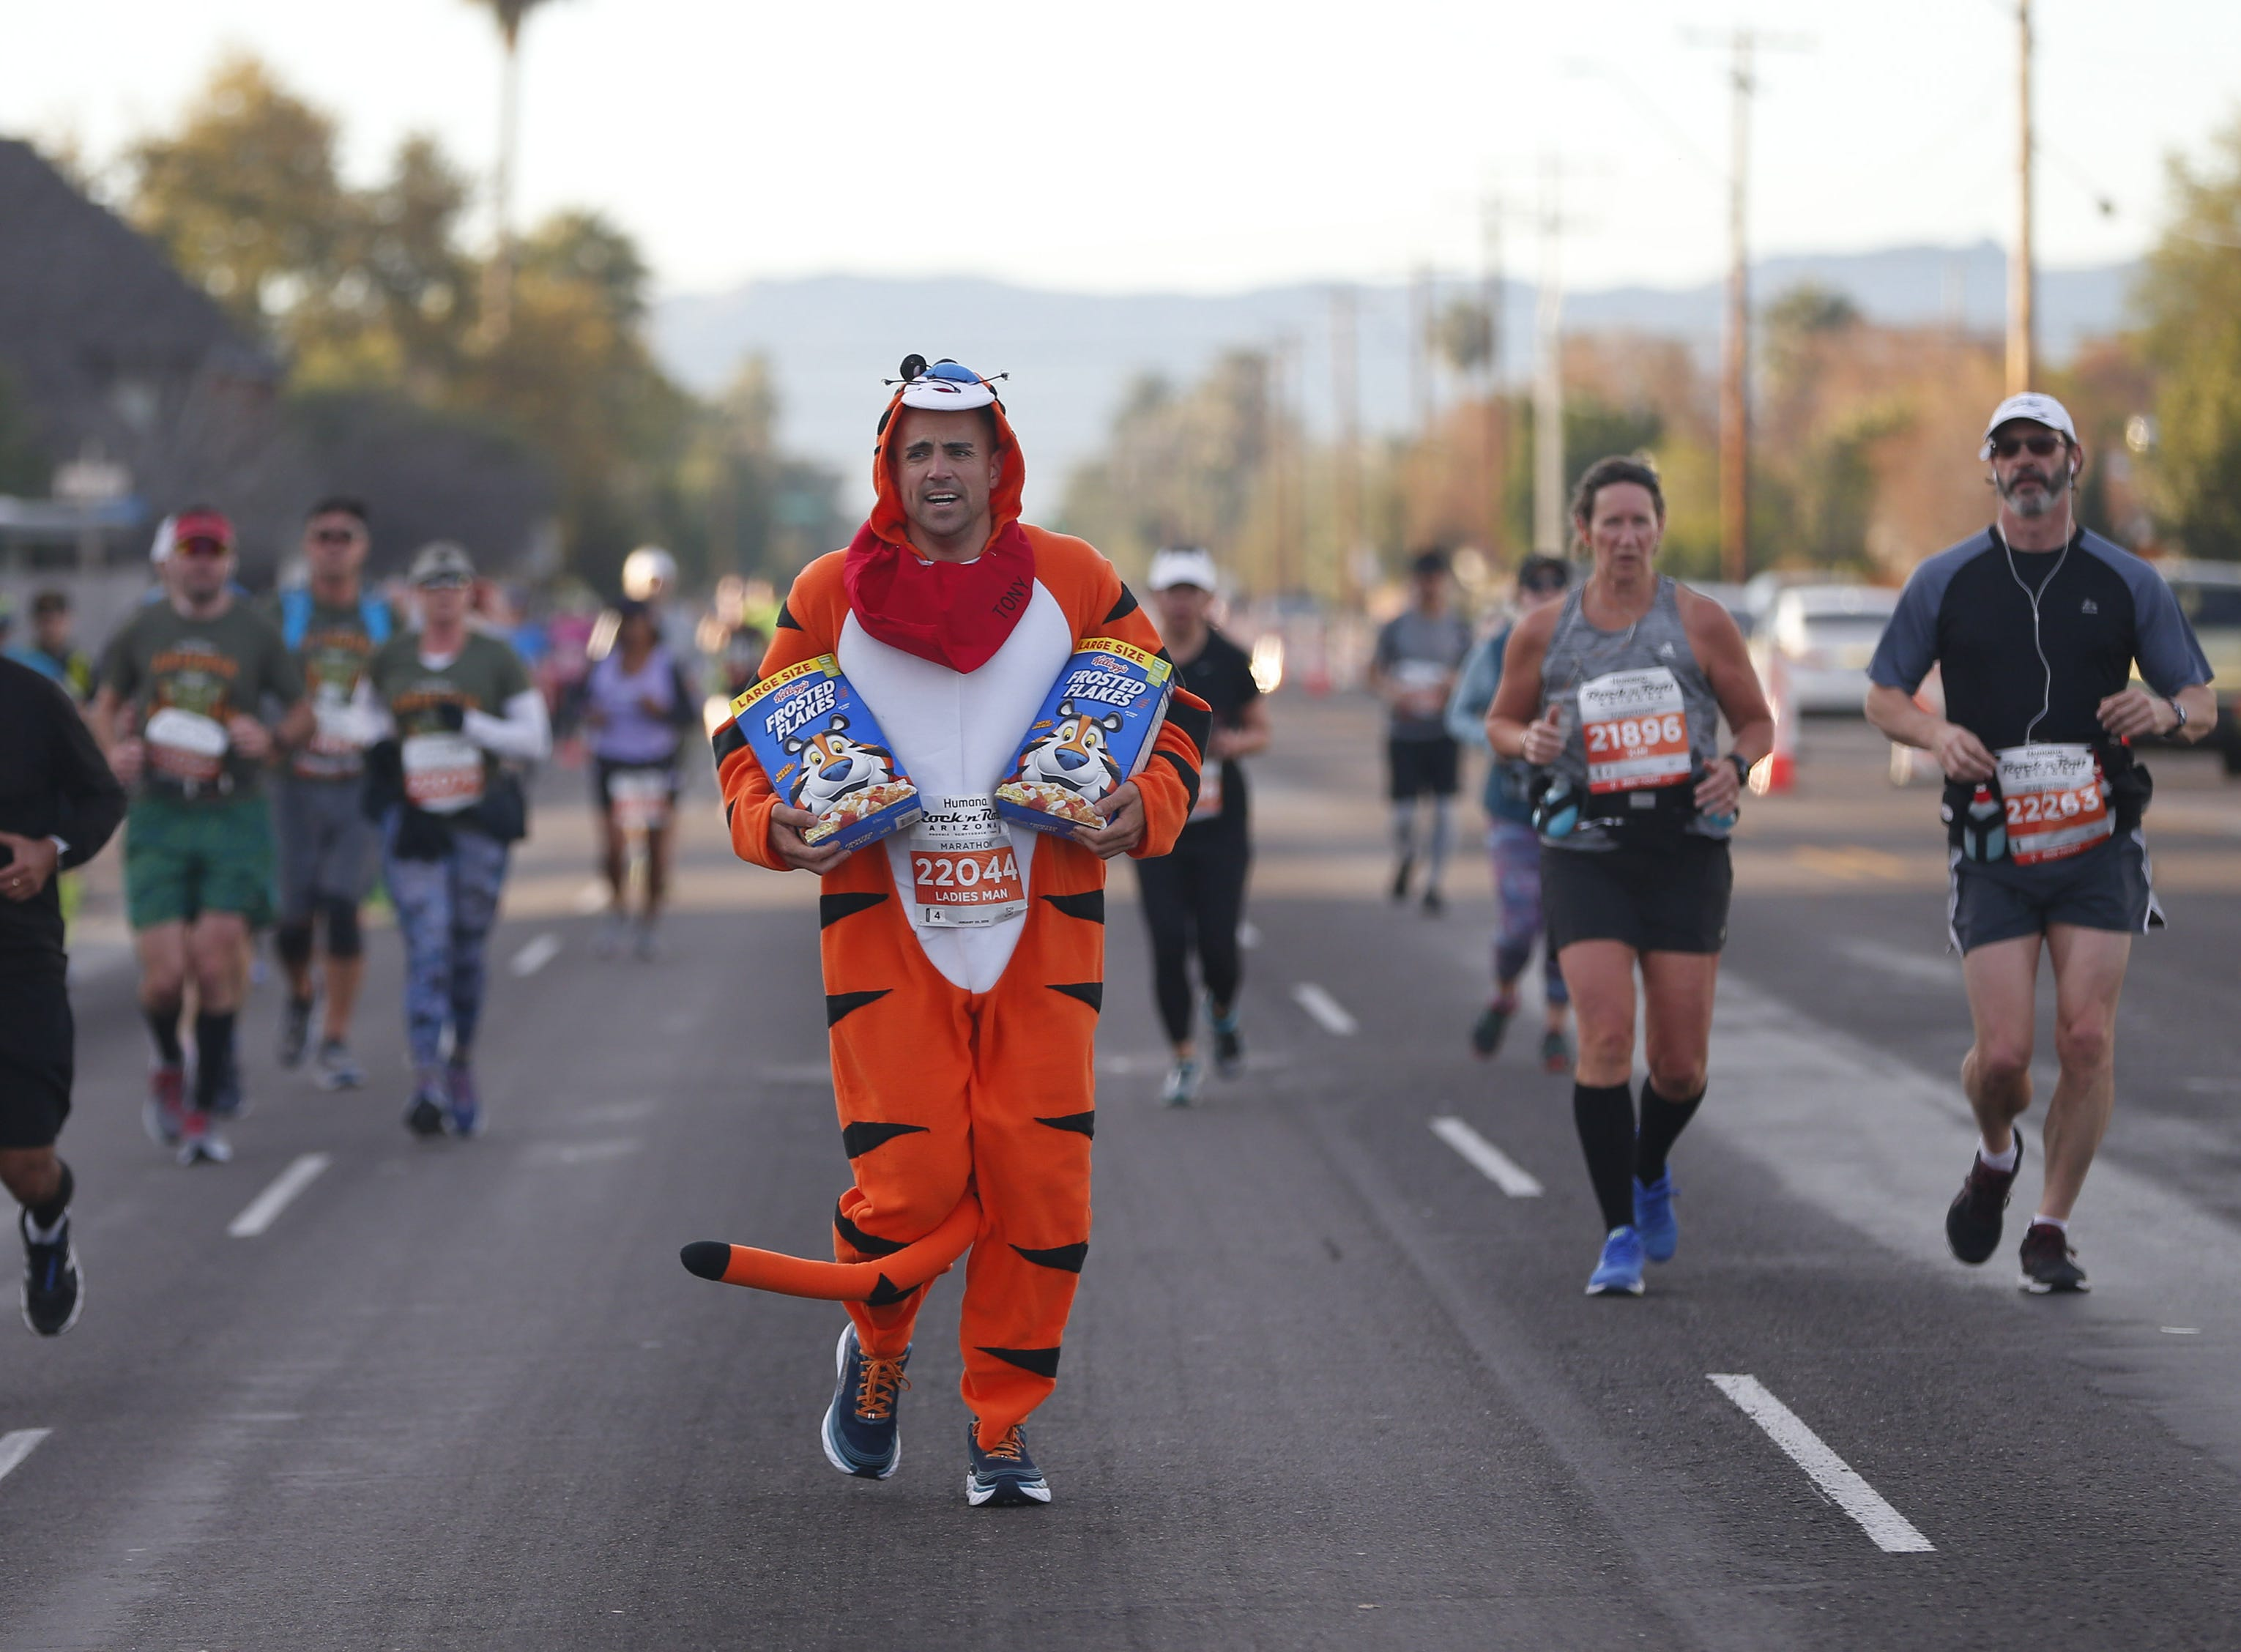 Sam Goldberg runs as the Frosted Flakes cereal mascot during the Rock 'n' Roll Marathon in Phoenix, Jan. 20, 2019.